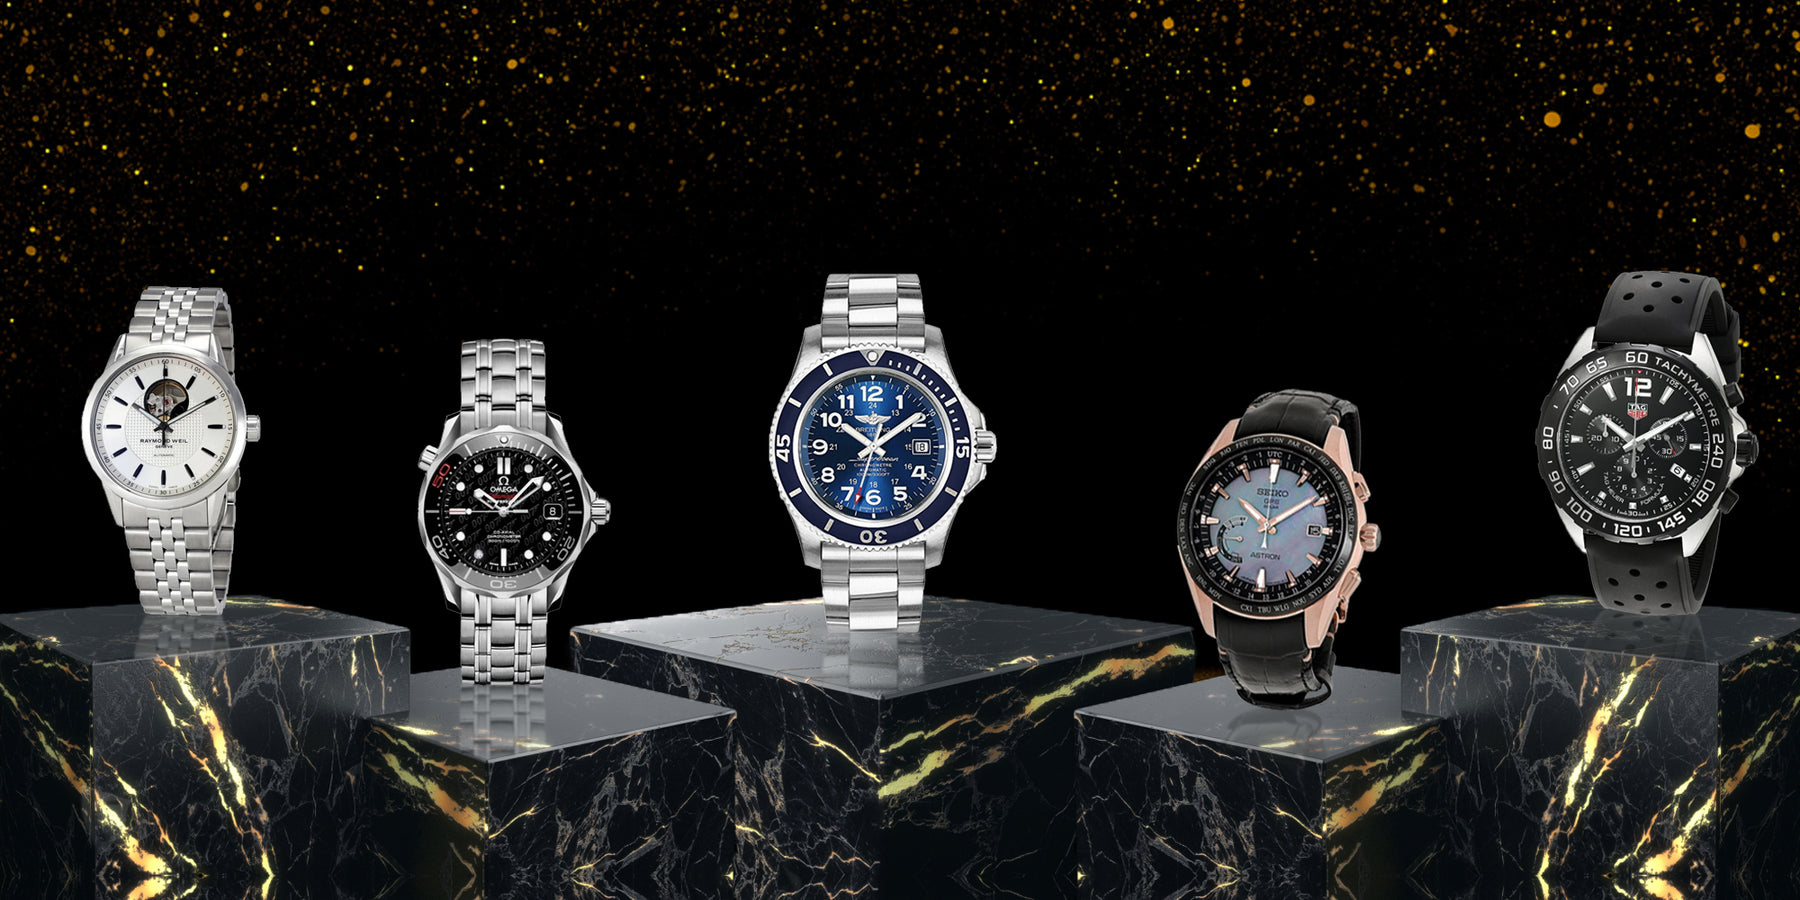 Top Five Men's Luxury Watches For the Holidays